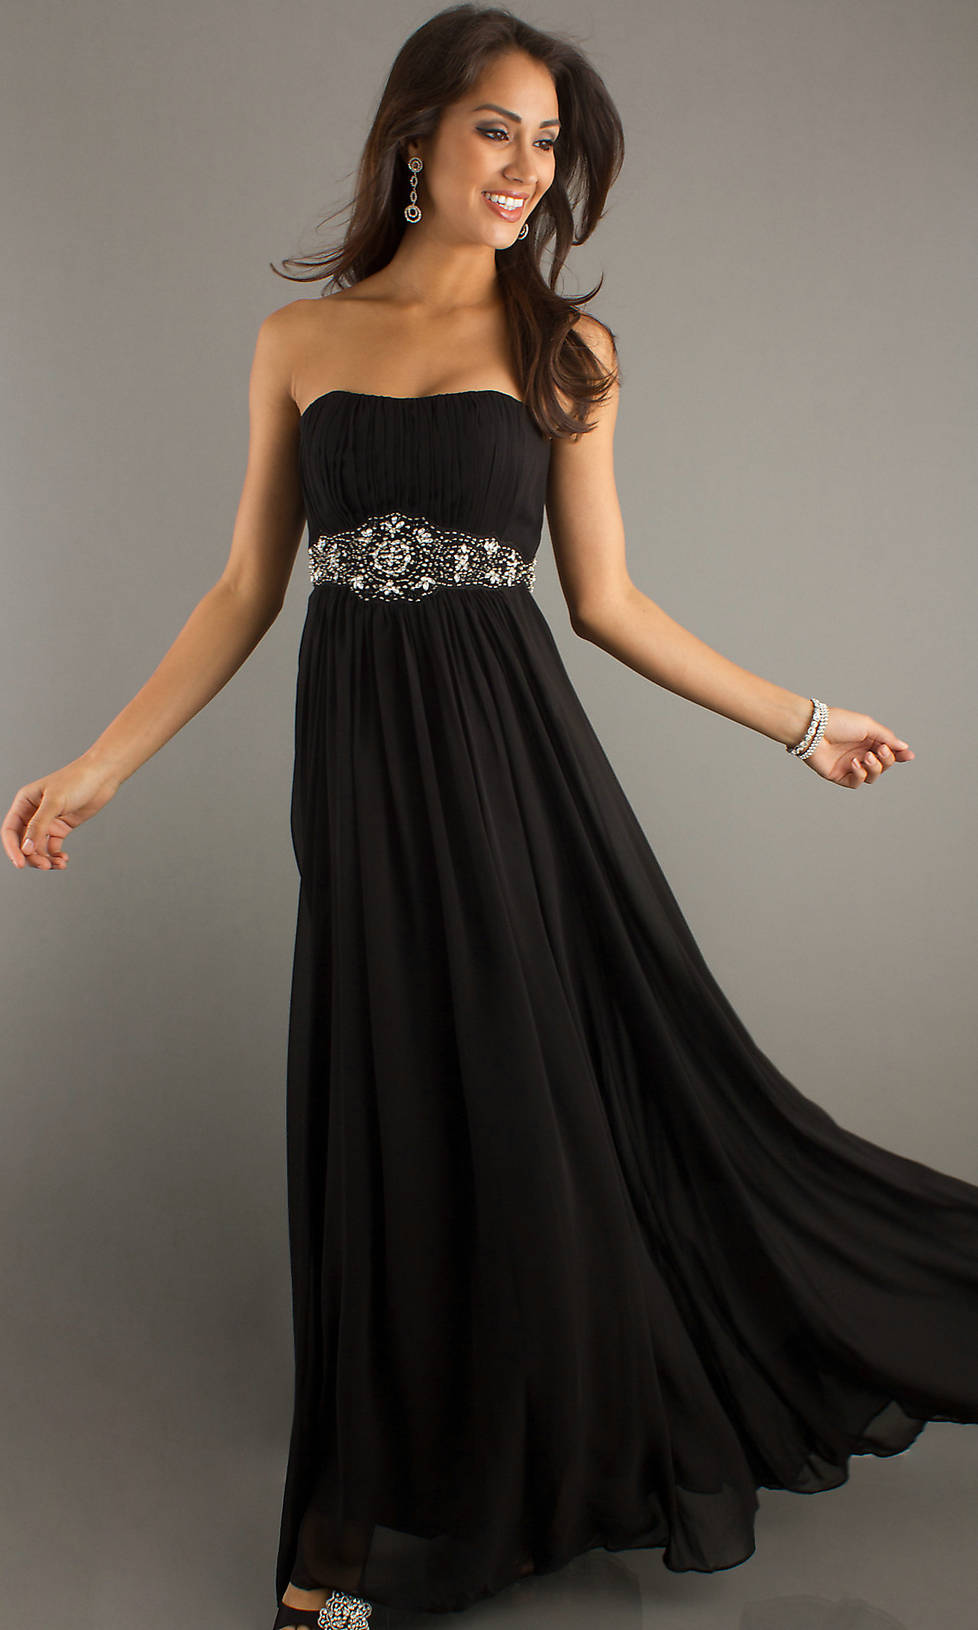 Another big no-no for prom is a BLACK dress. Again, wear this color at a more appropriate occasion (like a funeral)!